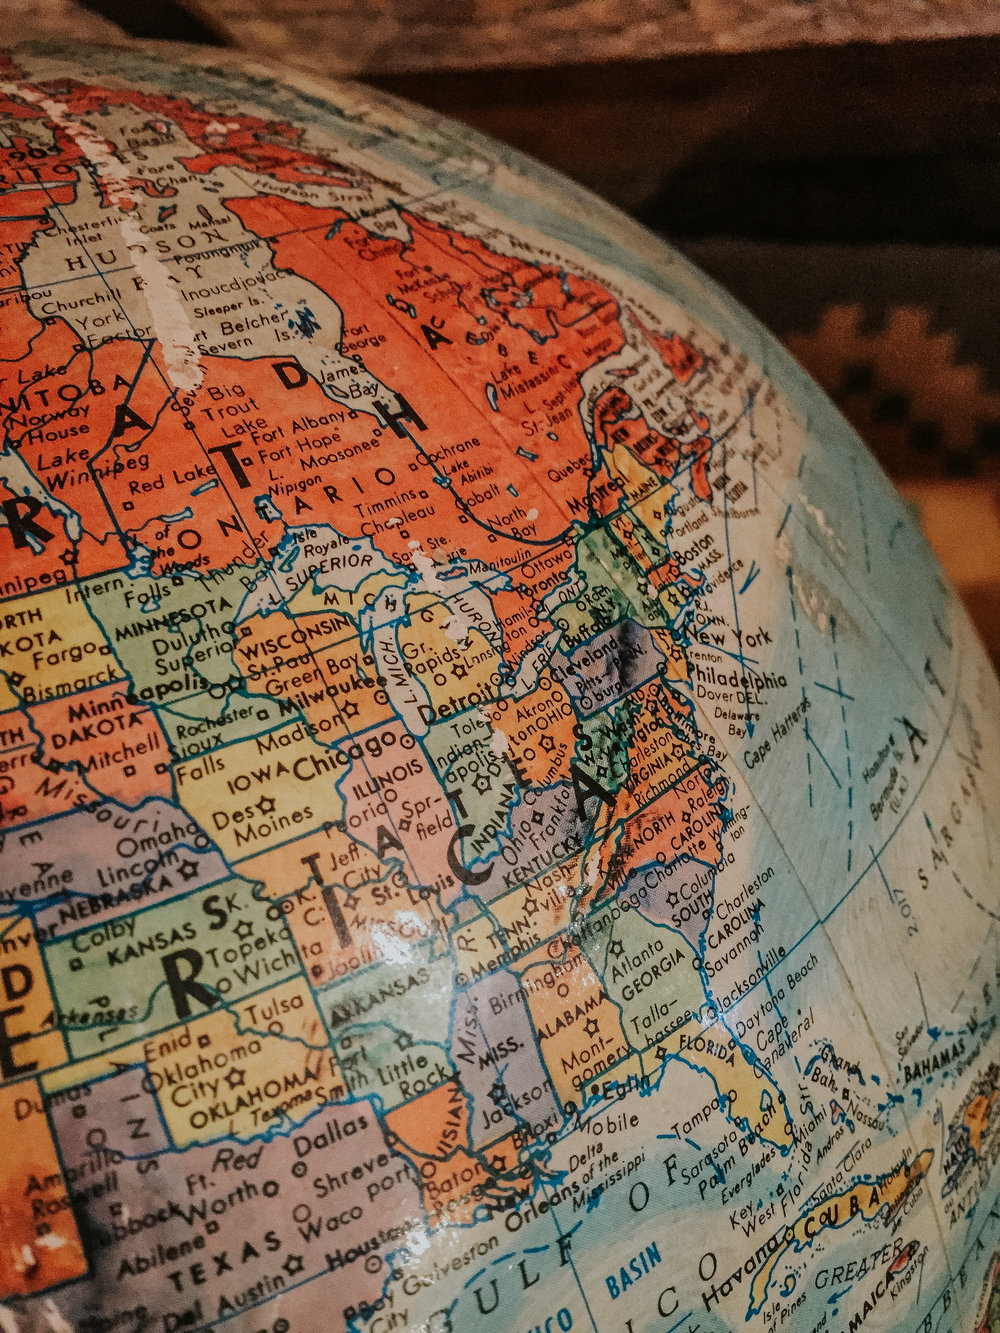 We walked around an antique shop today and looking at this old rusty globe put in perspective how far we've gone these past couple of weeks. Lincoln, NH